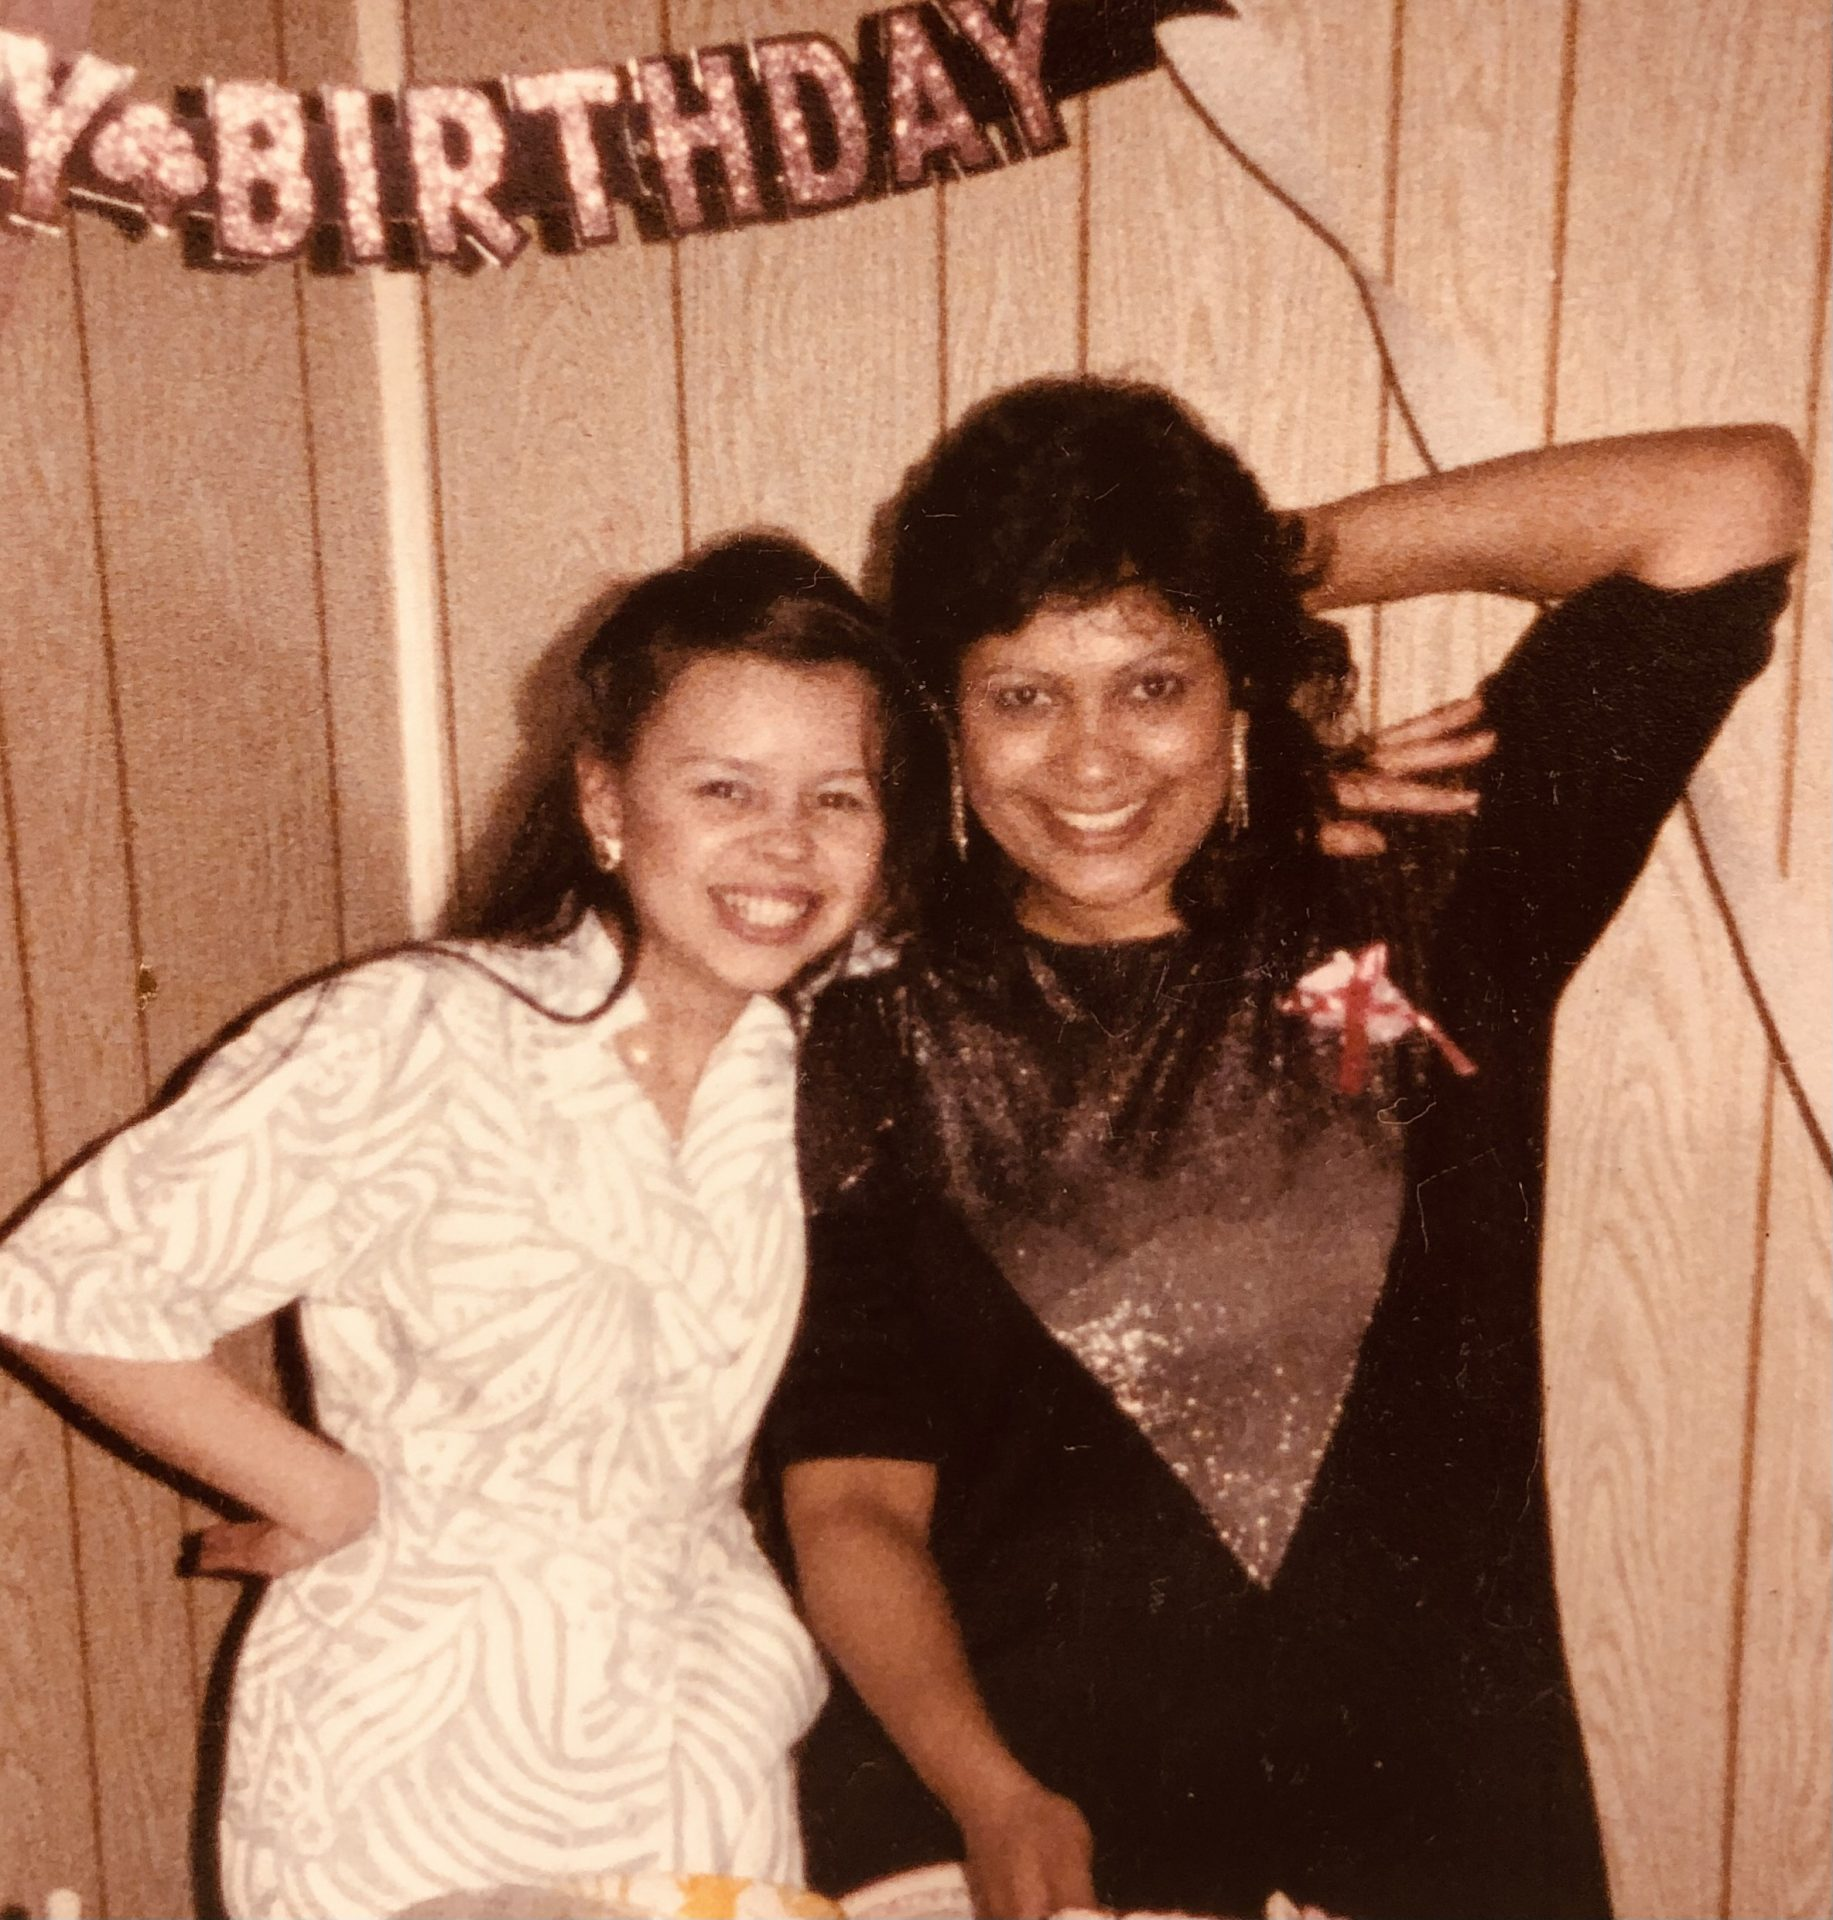 Birthday party back in 1987